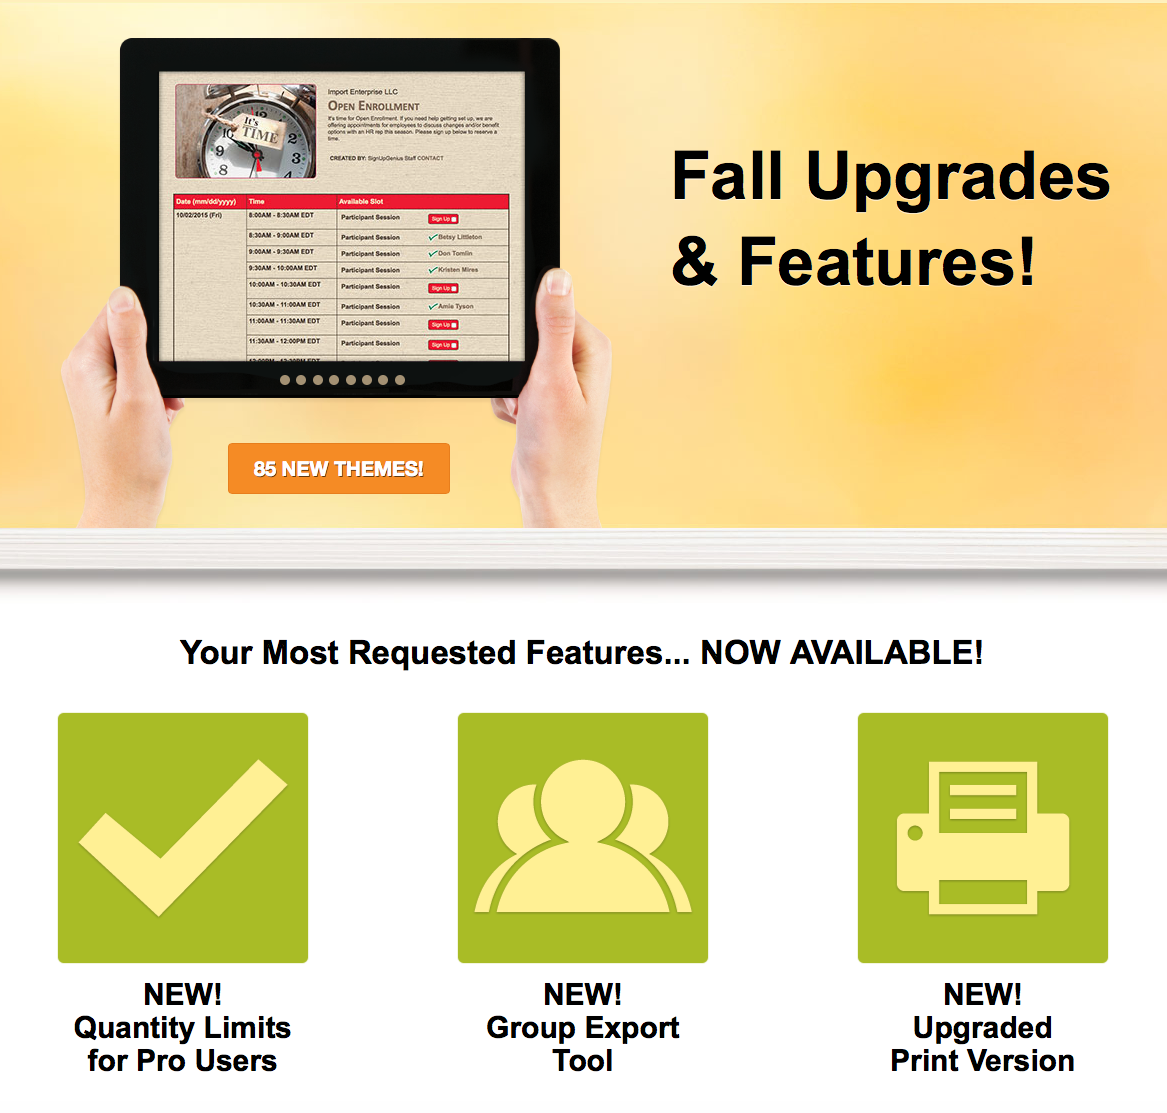 fall upgrades sign ups